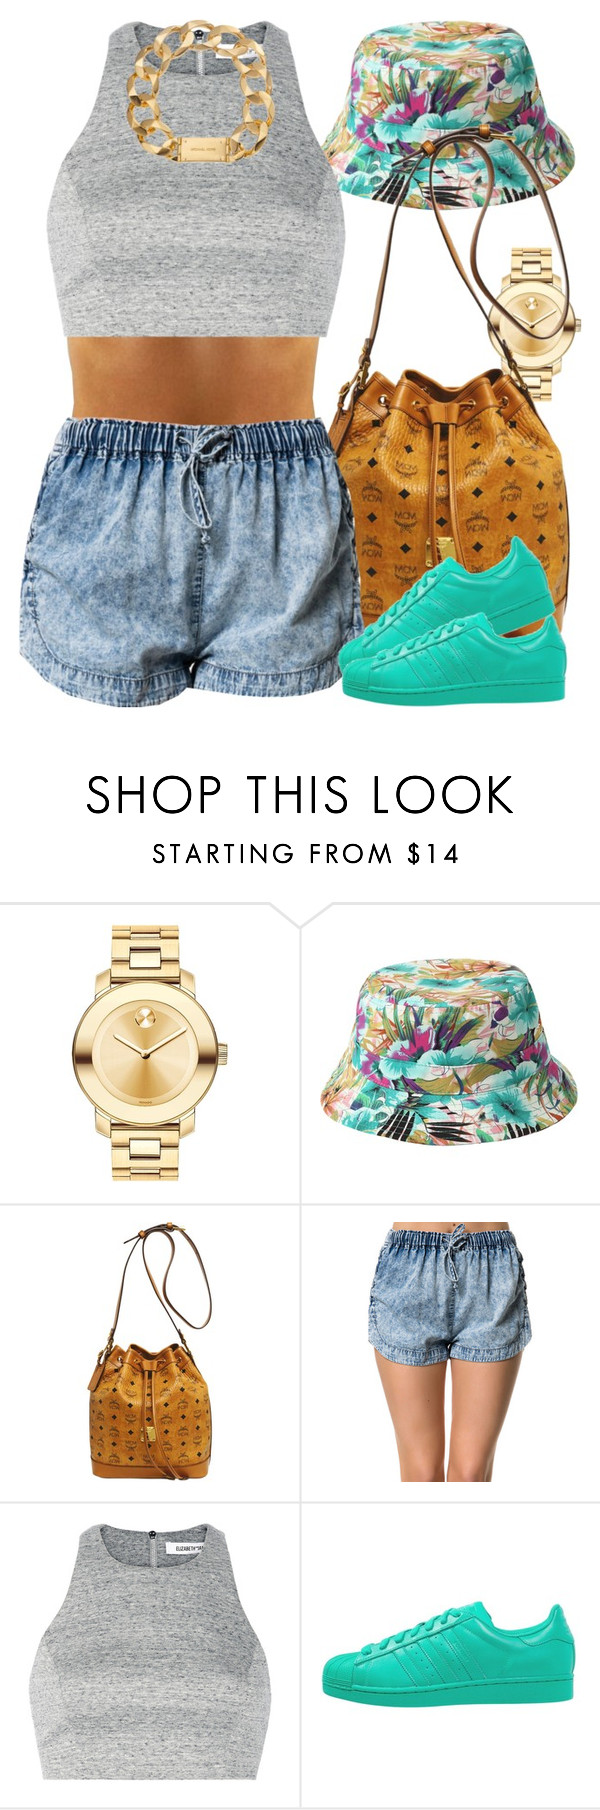 """""""Will the super colors ever come back in stock?"""" by livelifefreelyy ❤ liked on Polyvore featuring Movado, MCM, Pistola, Elizabeth and James, adidas Originals and Michael Kors"""